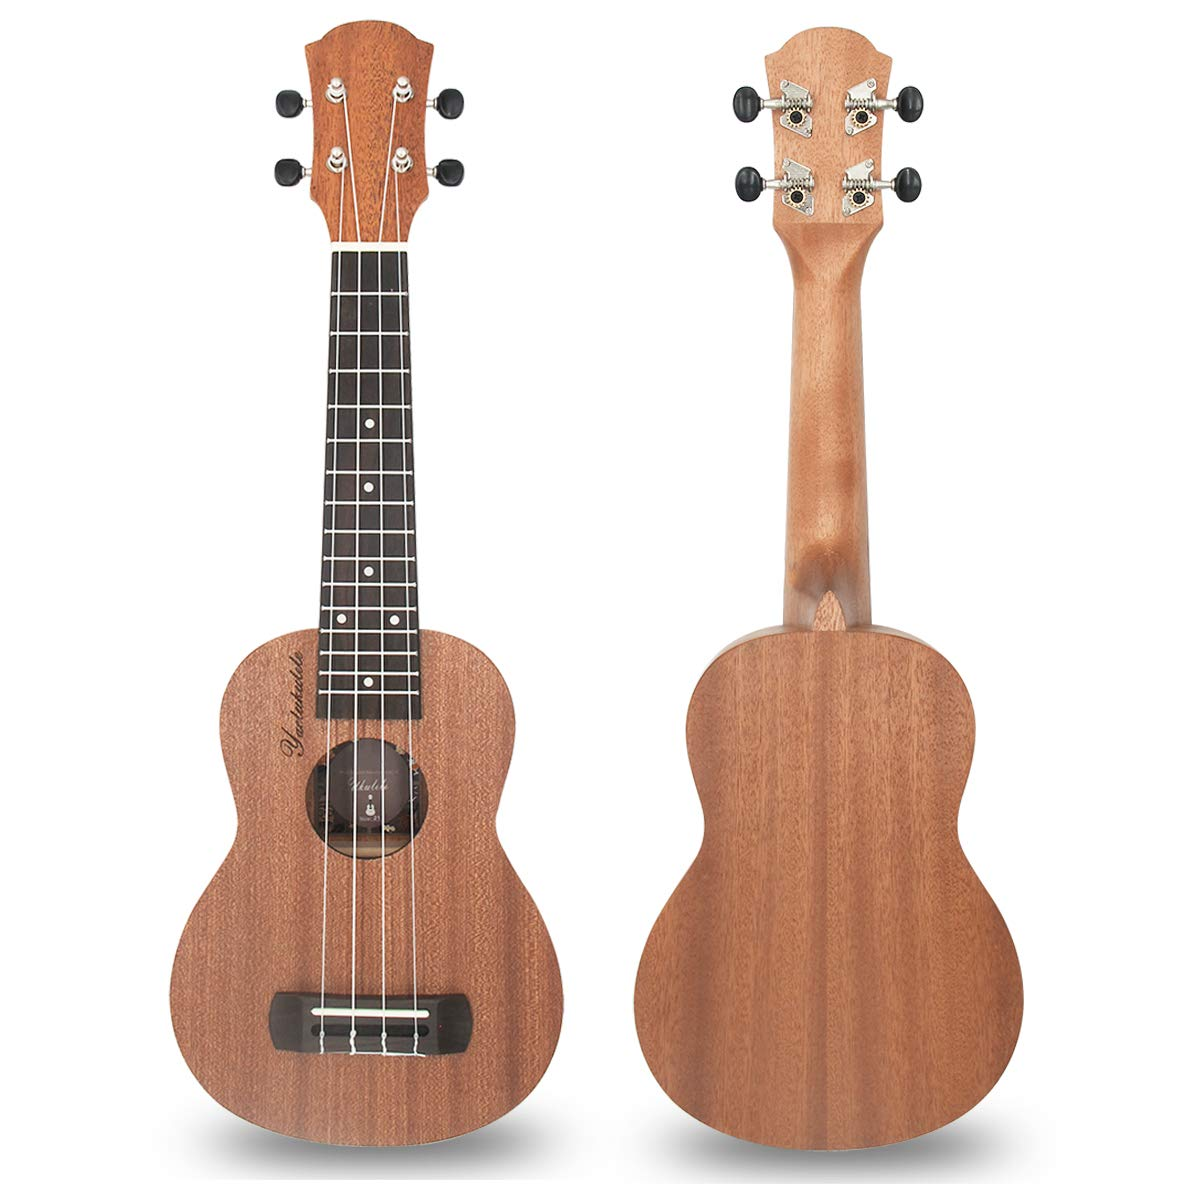 ACTUTECH 23 Inch Concert Rosewood Ukulele Small Guitar for Kids Beginner